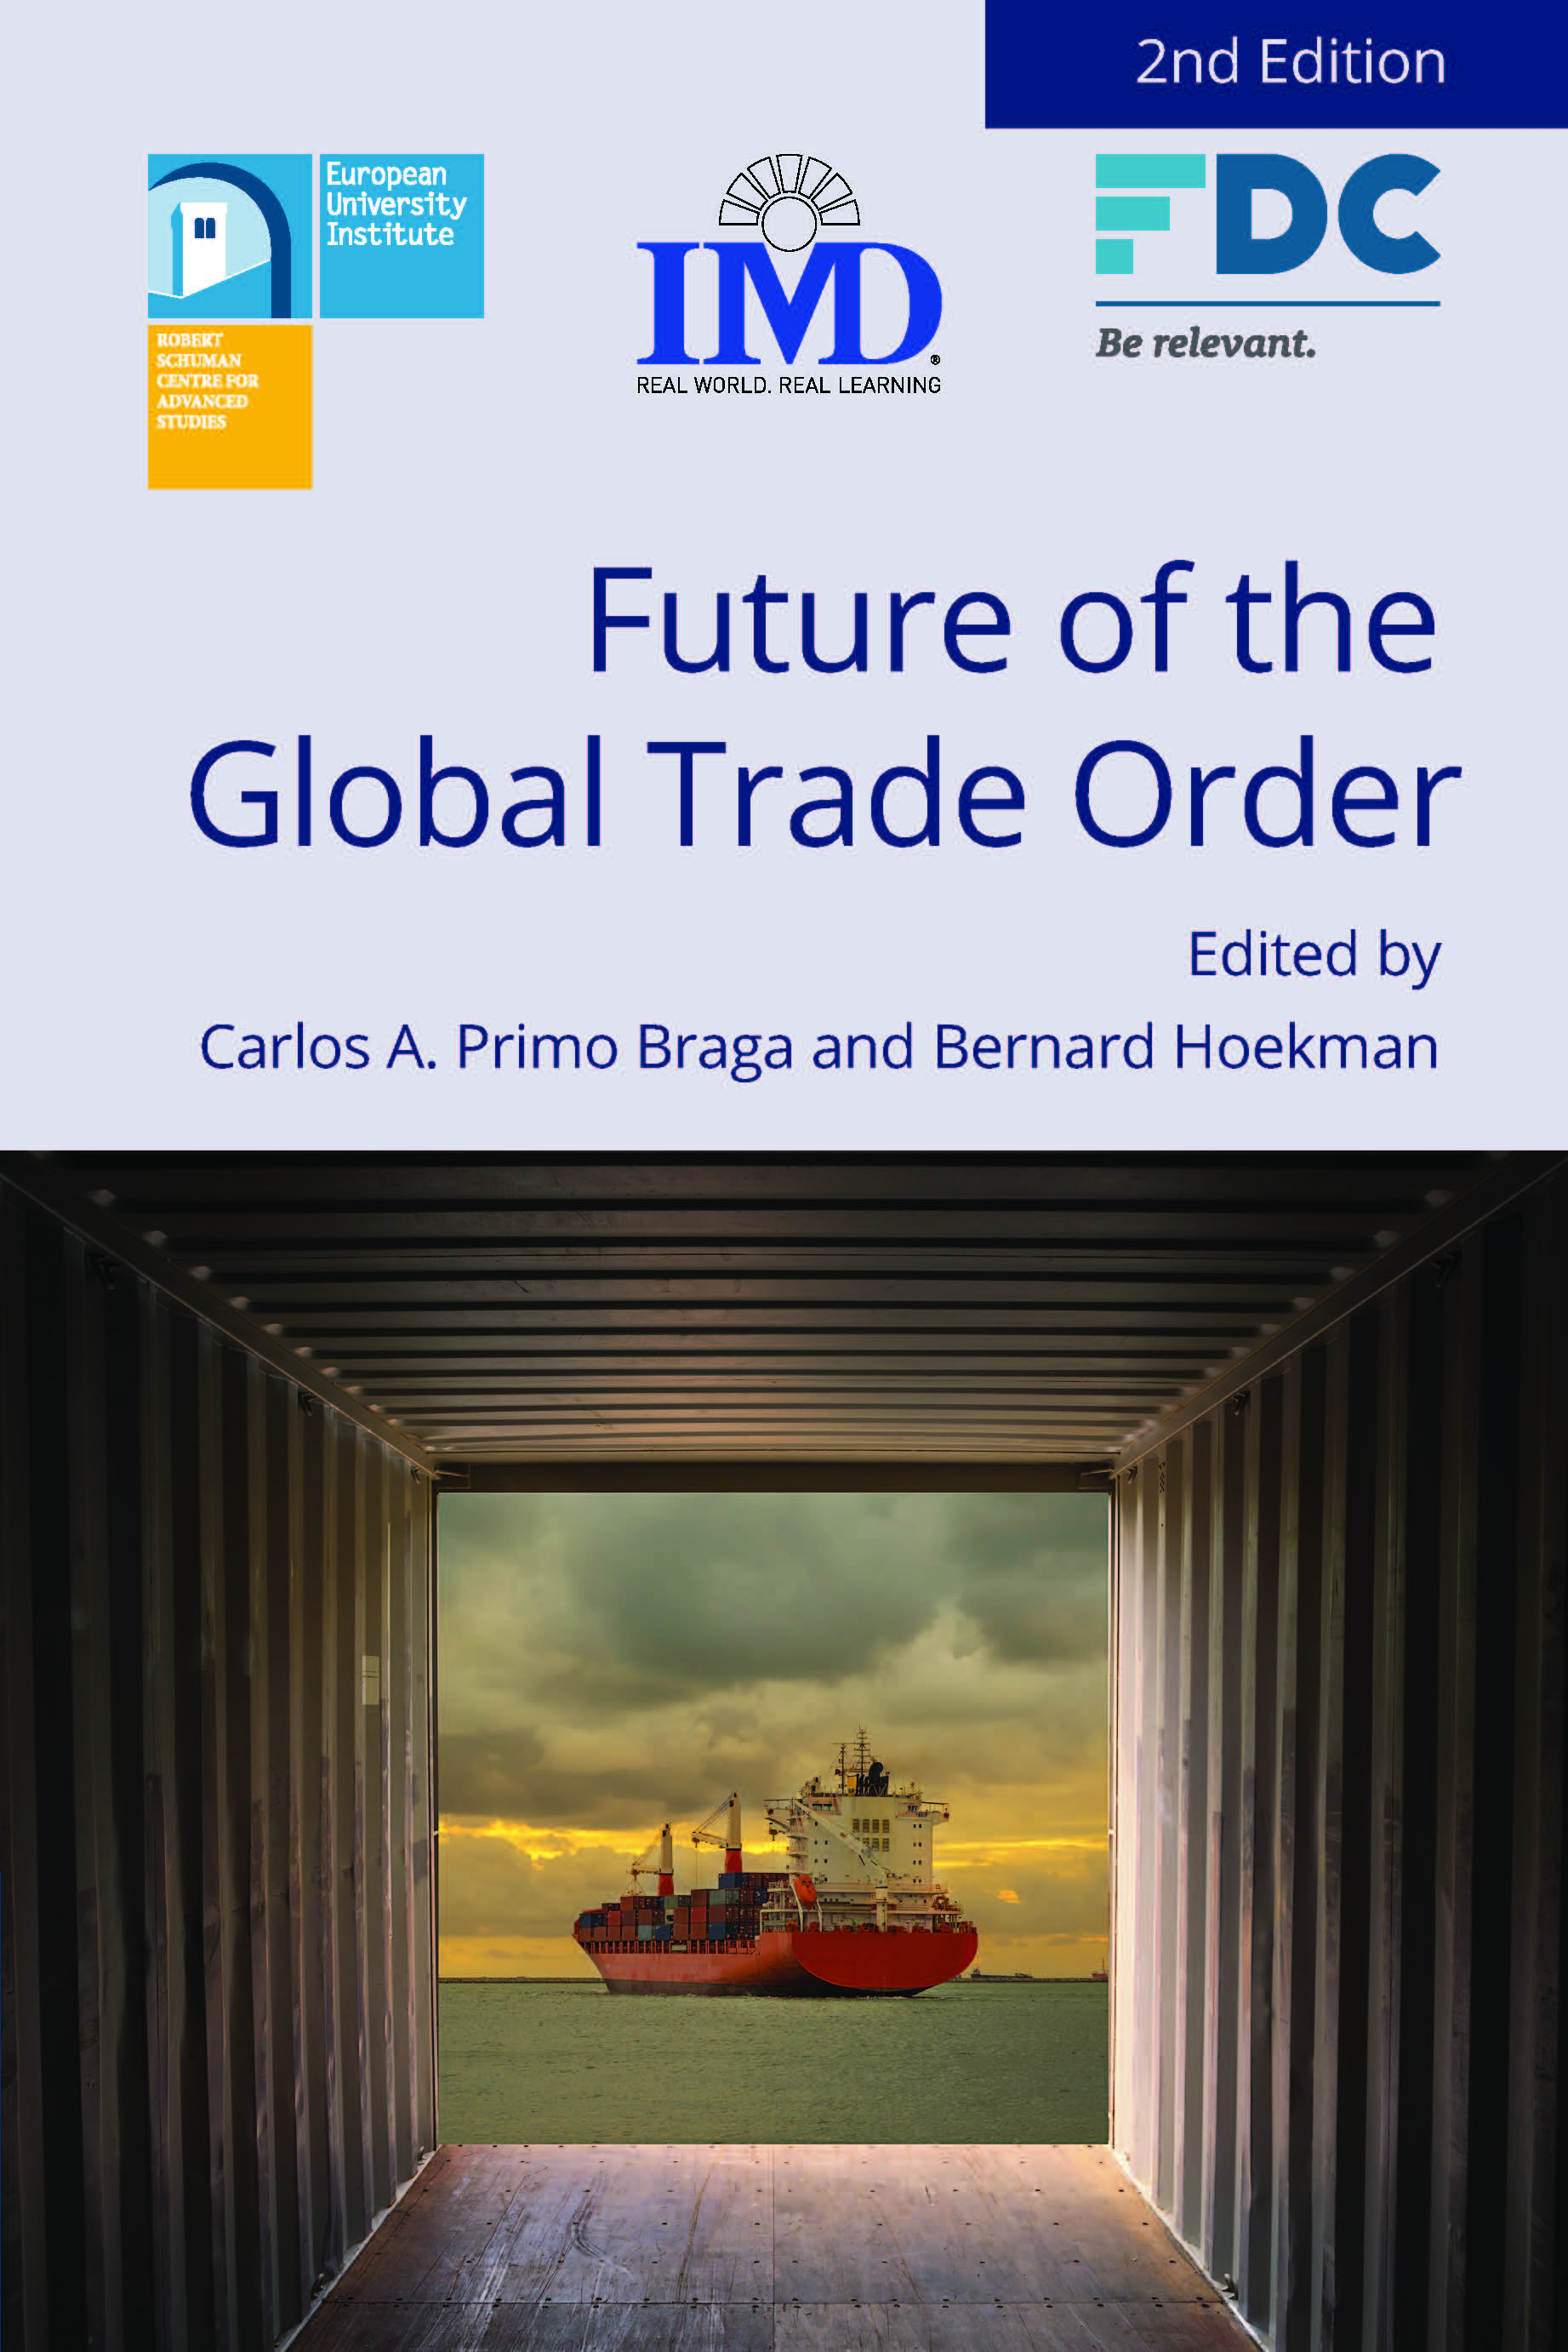 Future_Global_Trade_Order_2ndEd